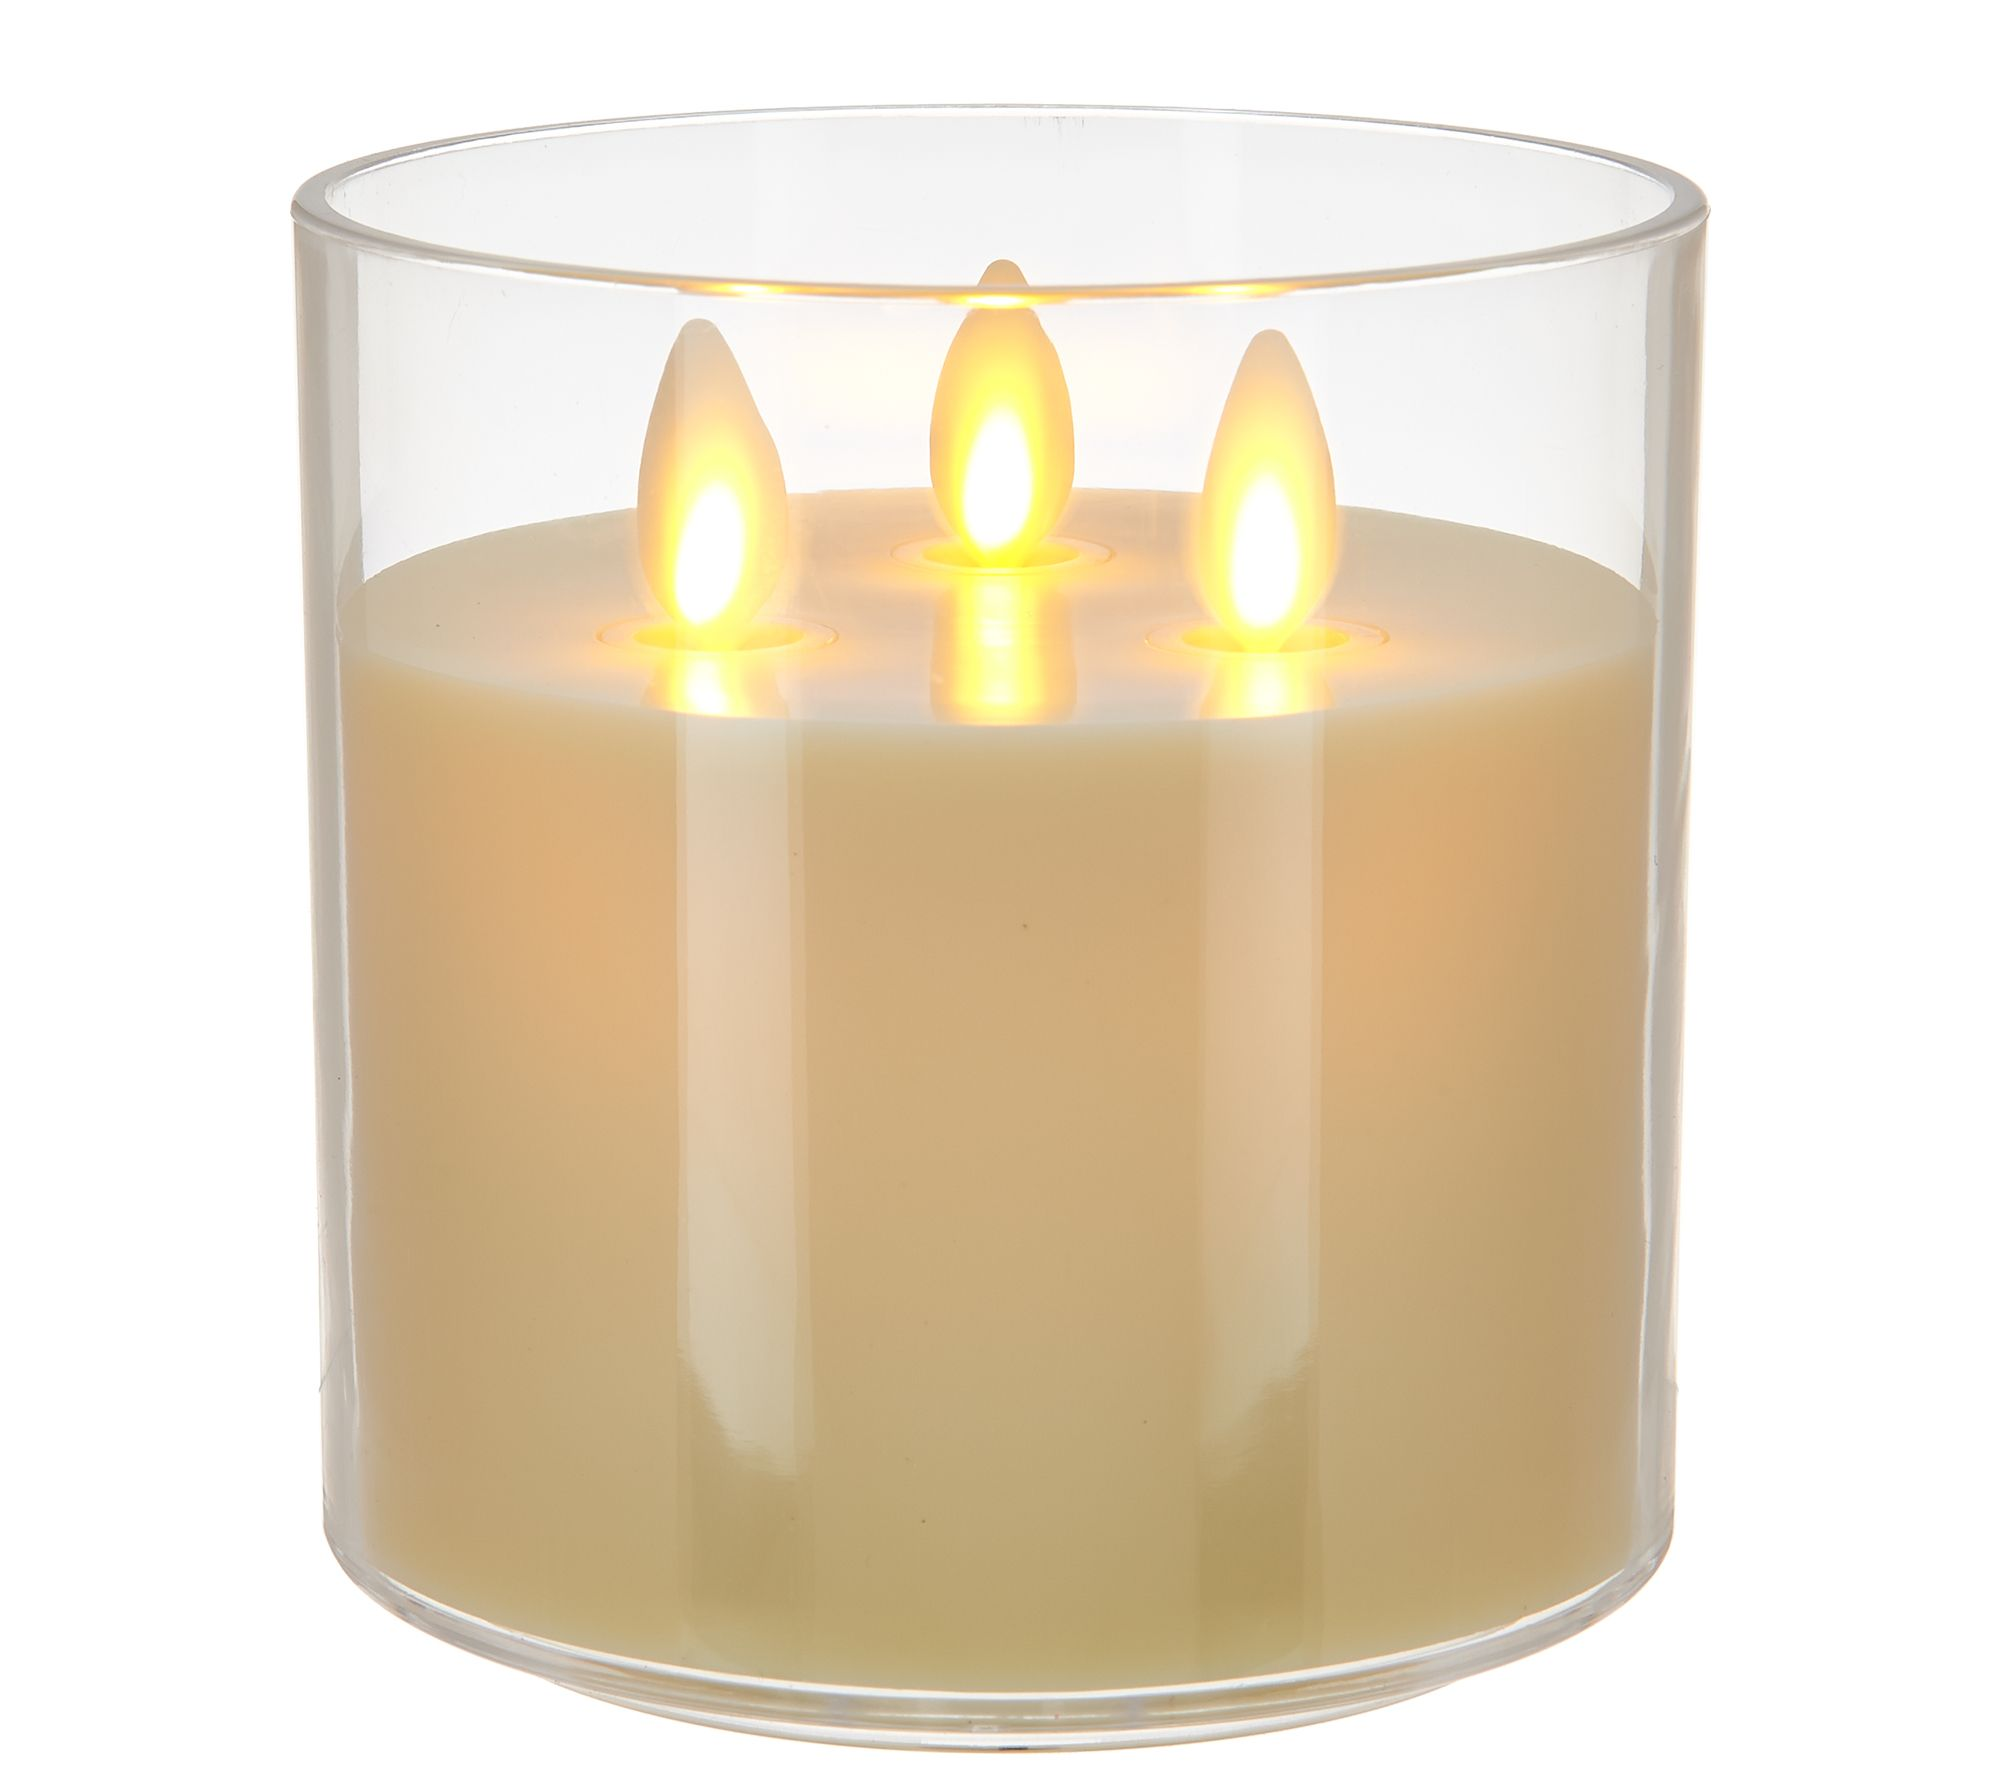 Multi Wick Candles Luminara Candles Scents For The Home Qvccom